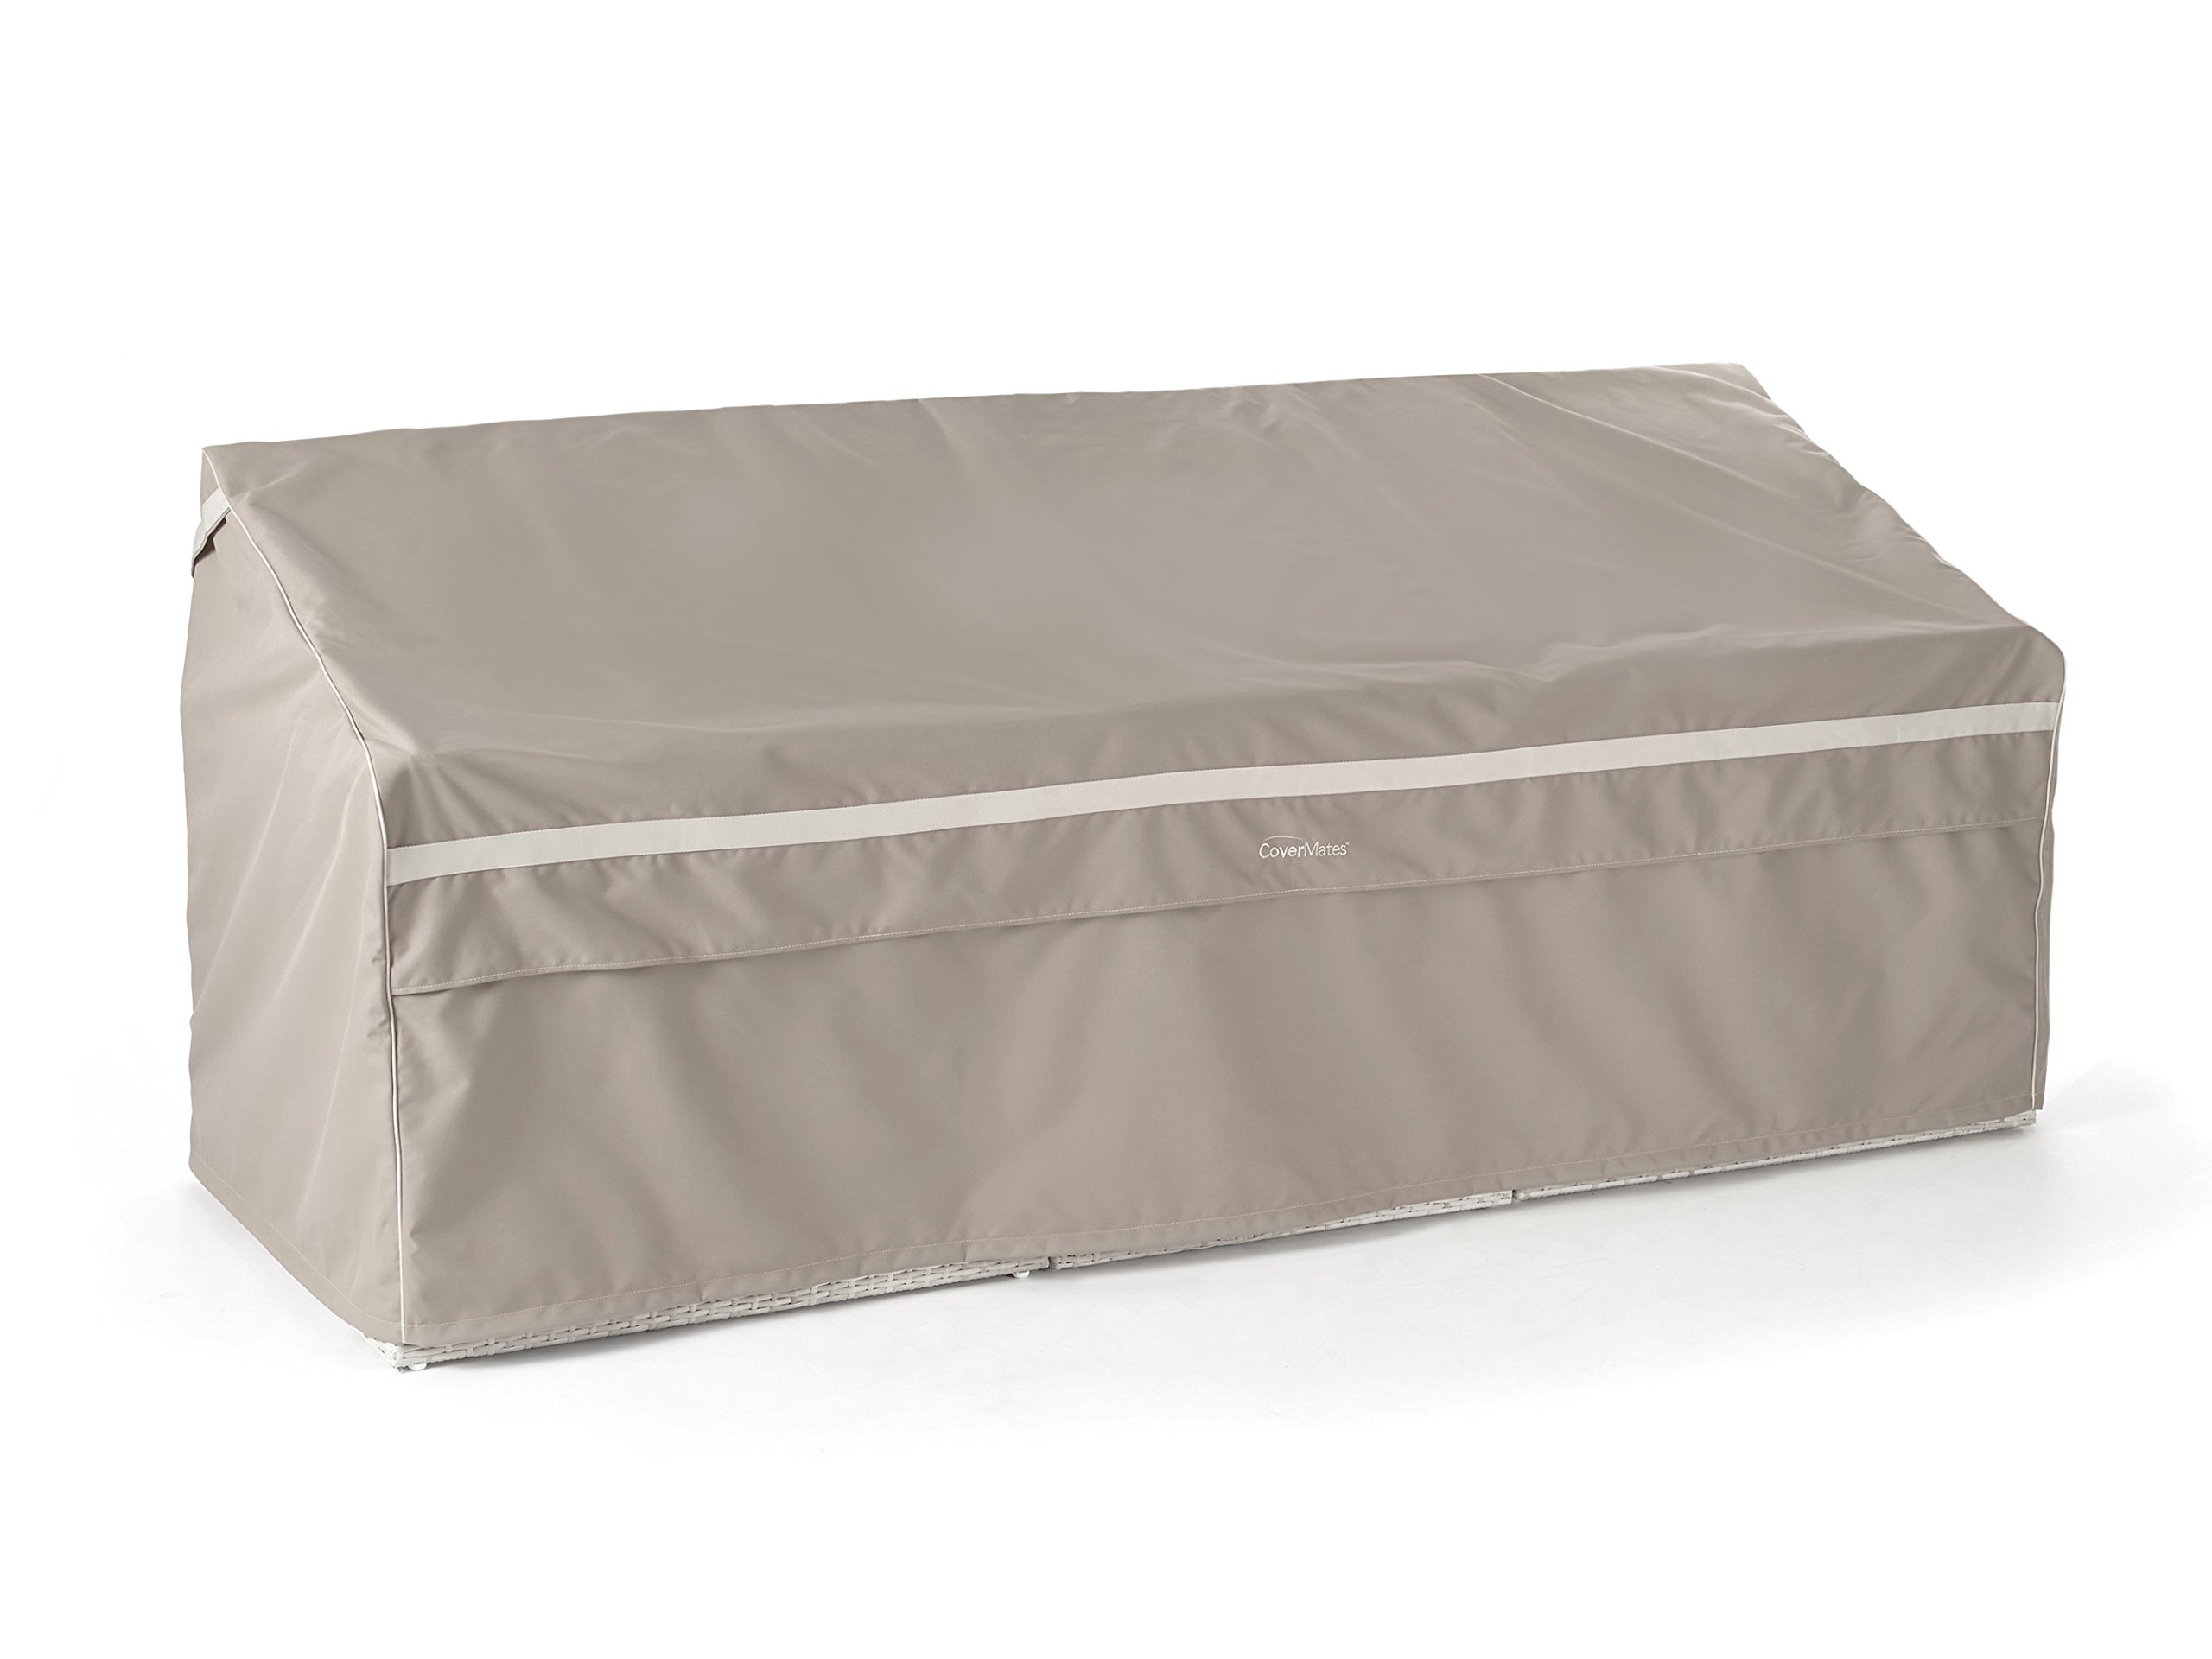 CoverMates – Outdoor Patio Sofa Cover – 94W x 40D x 40H – Prestige Collection – 7 YR Warranty – Year Around Protection - Clay by CoverMates